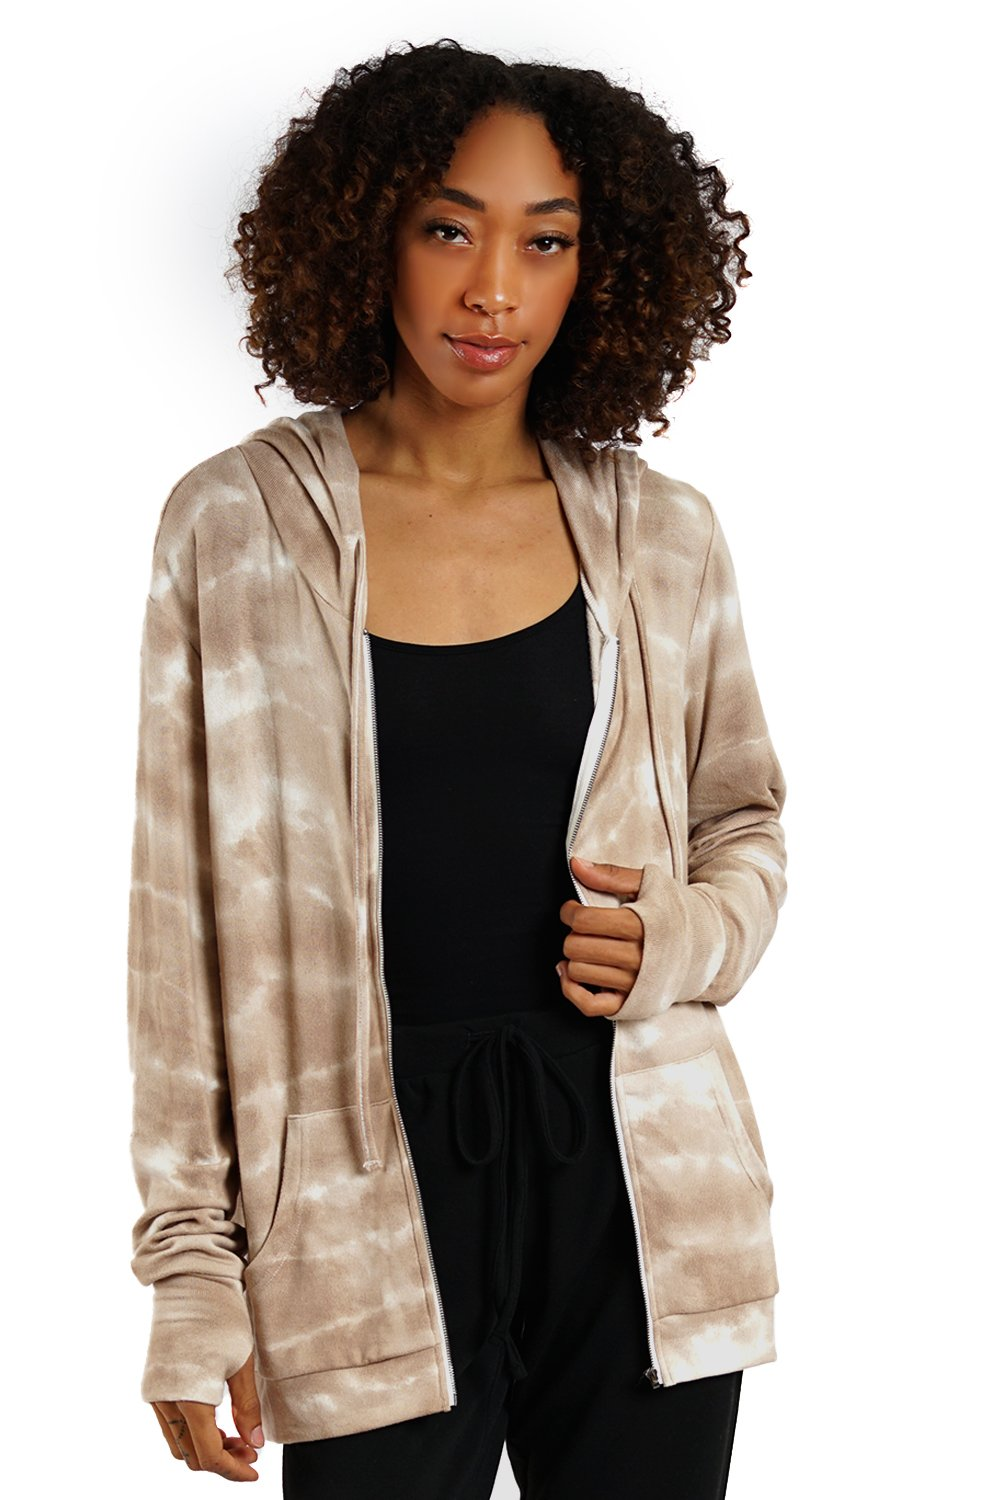 LA Trading Co Taupe Tie Dye Zip Up Hoodie